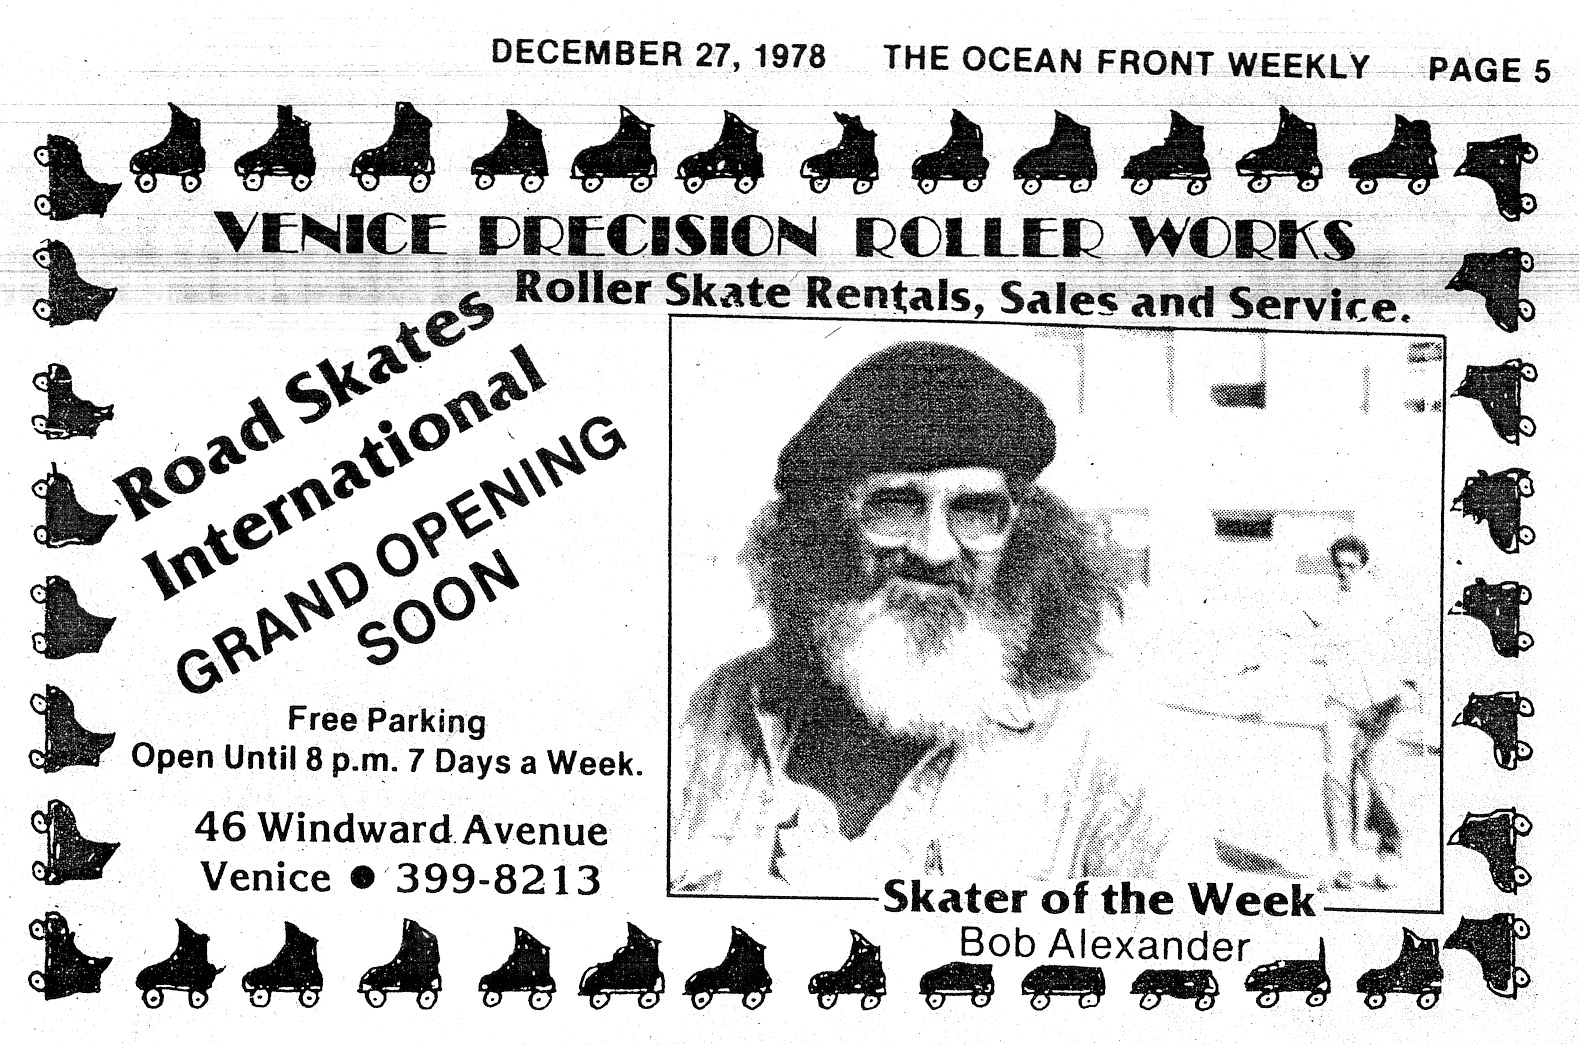 Bob Alexander, Skater of the Week. From <em>The Ocean Front Weekly</em>, December 27, 1978.